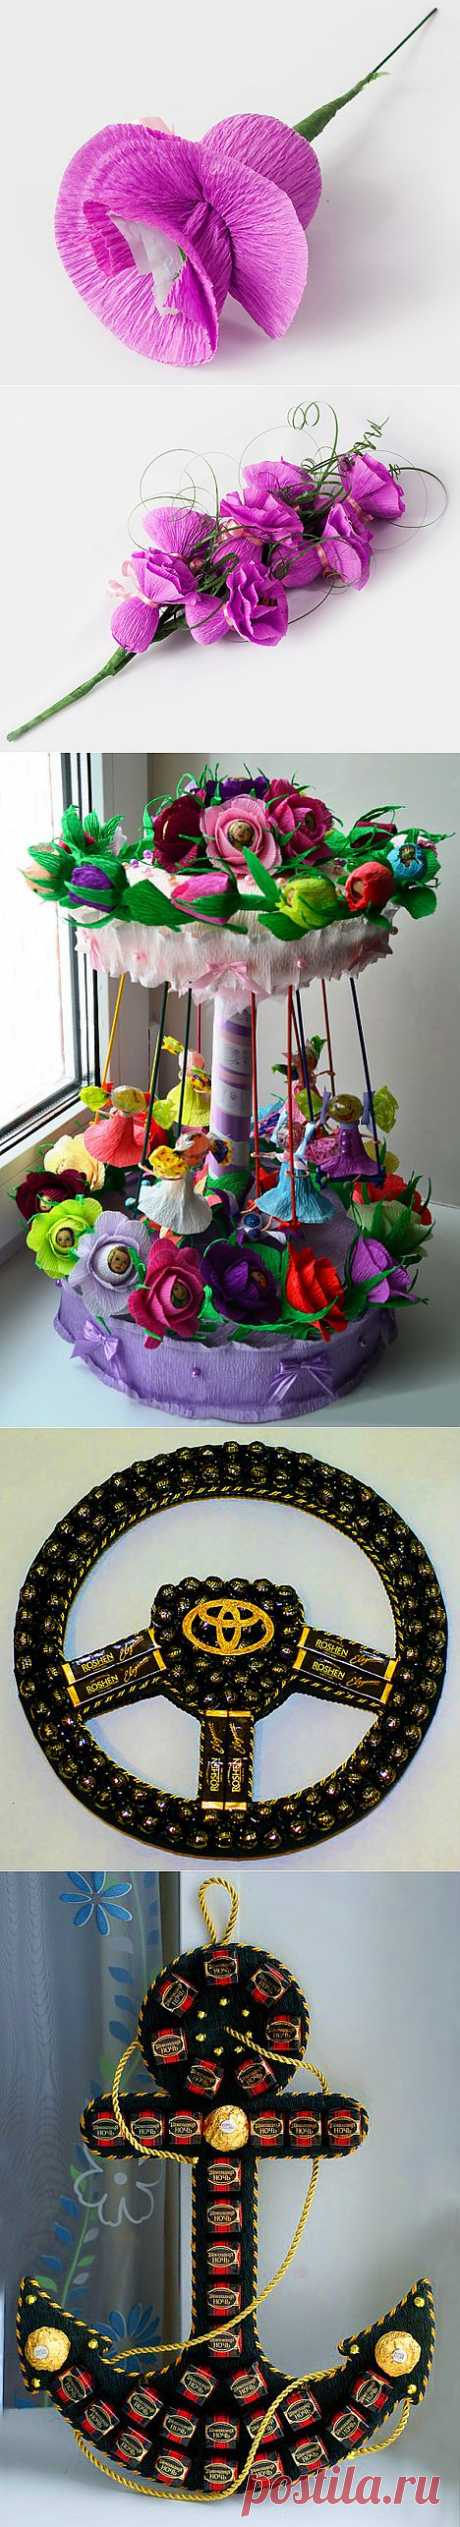 How to do BOUQUETS OF CANDIES. Bouquets from candies the hands - continuation 6